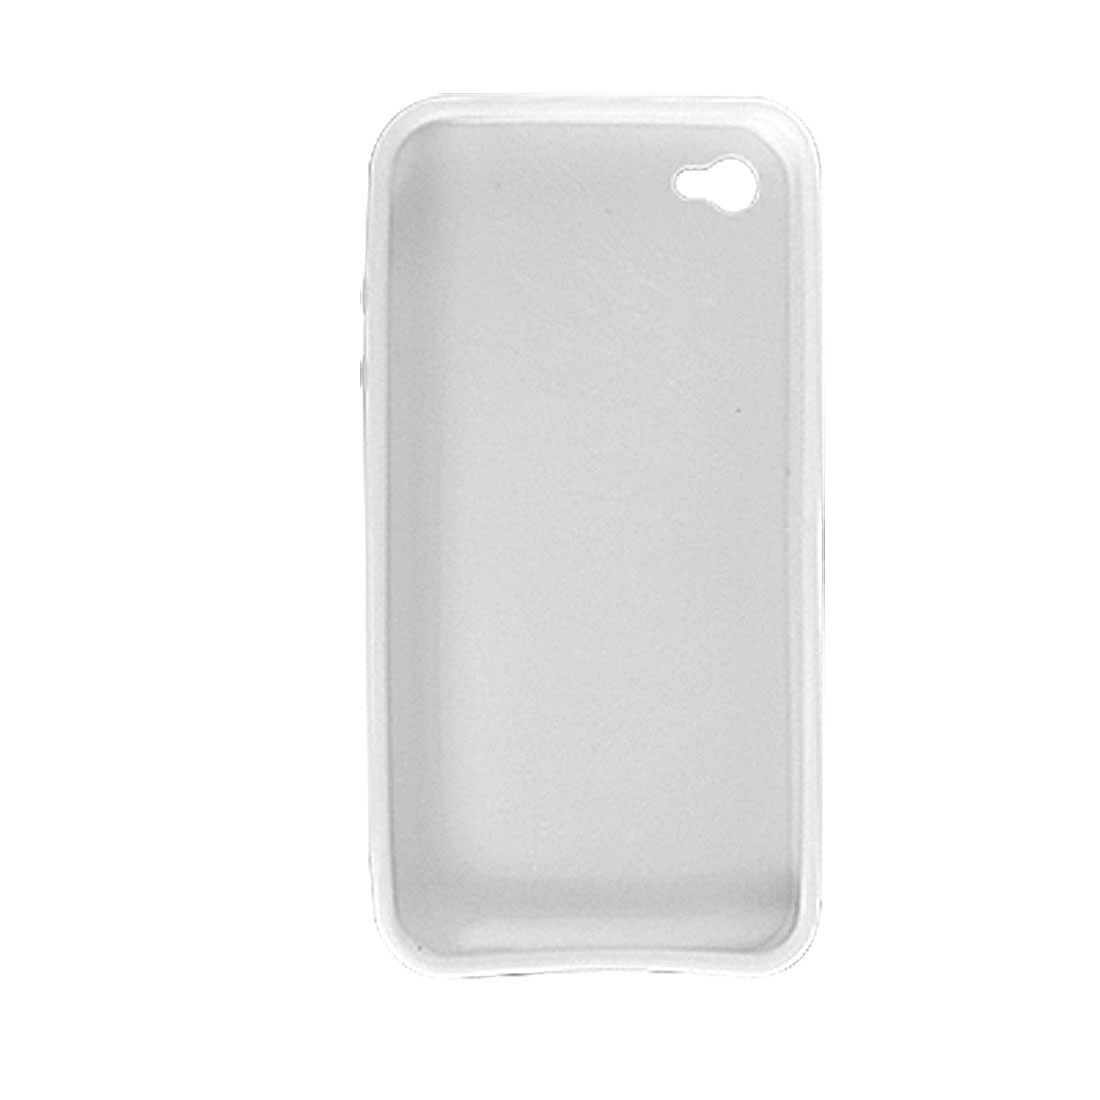 White Soft Plastic Protect Case for Apple iPhone 4 4G